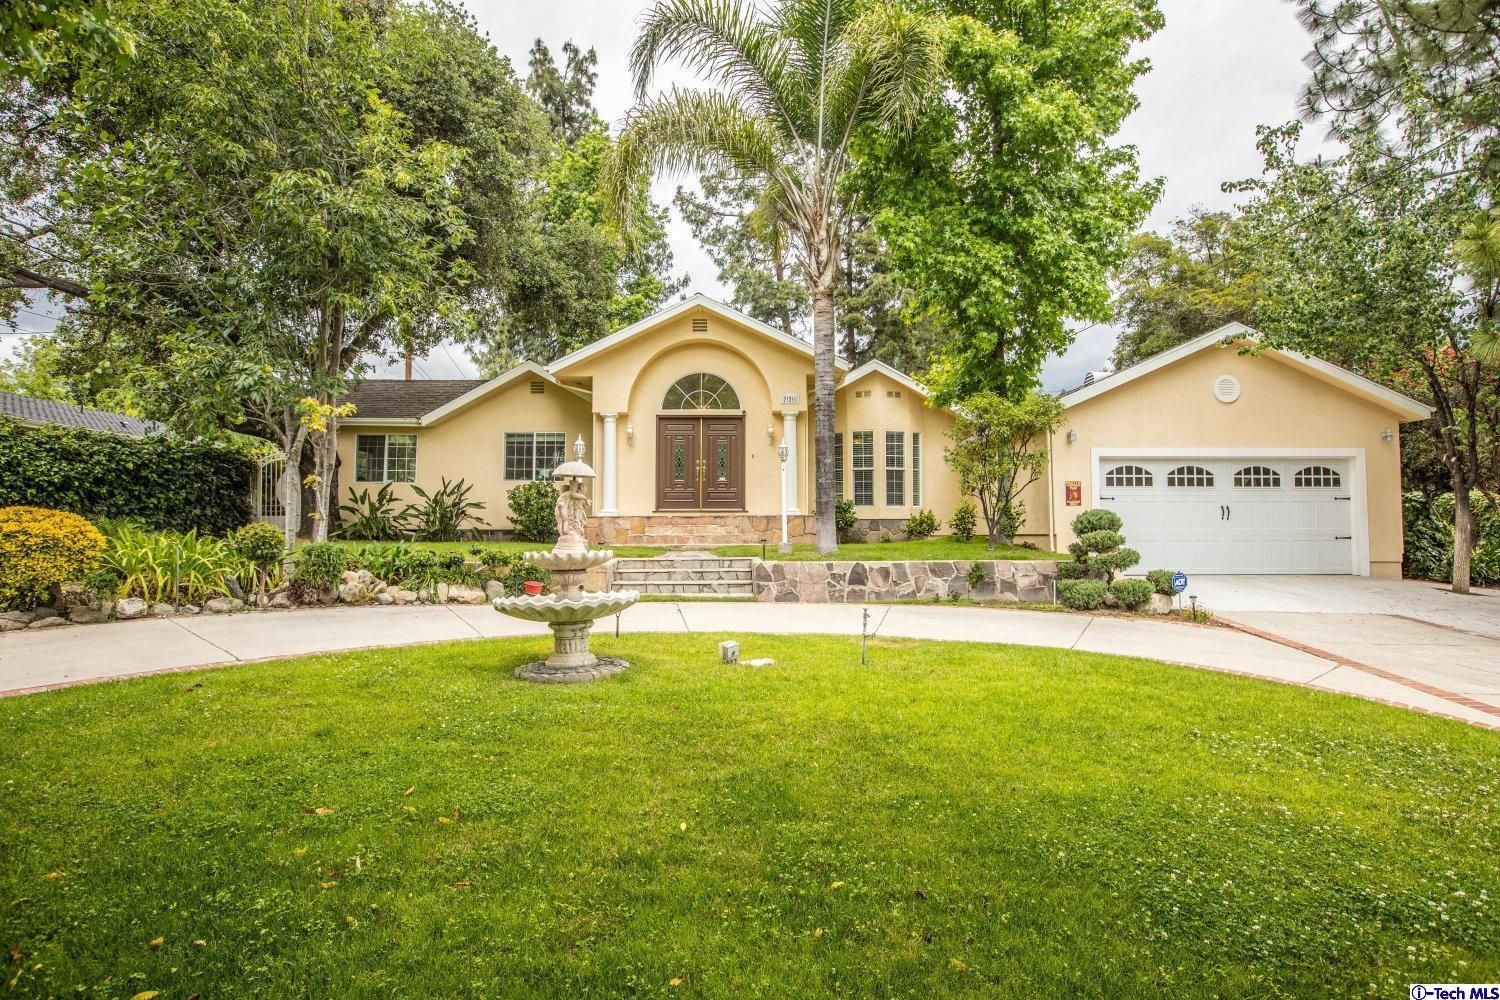 721 Craig Avenue, La Canada Flintridge, CA 91011